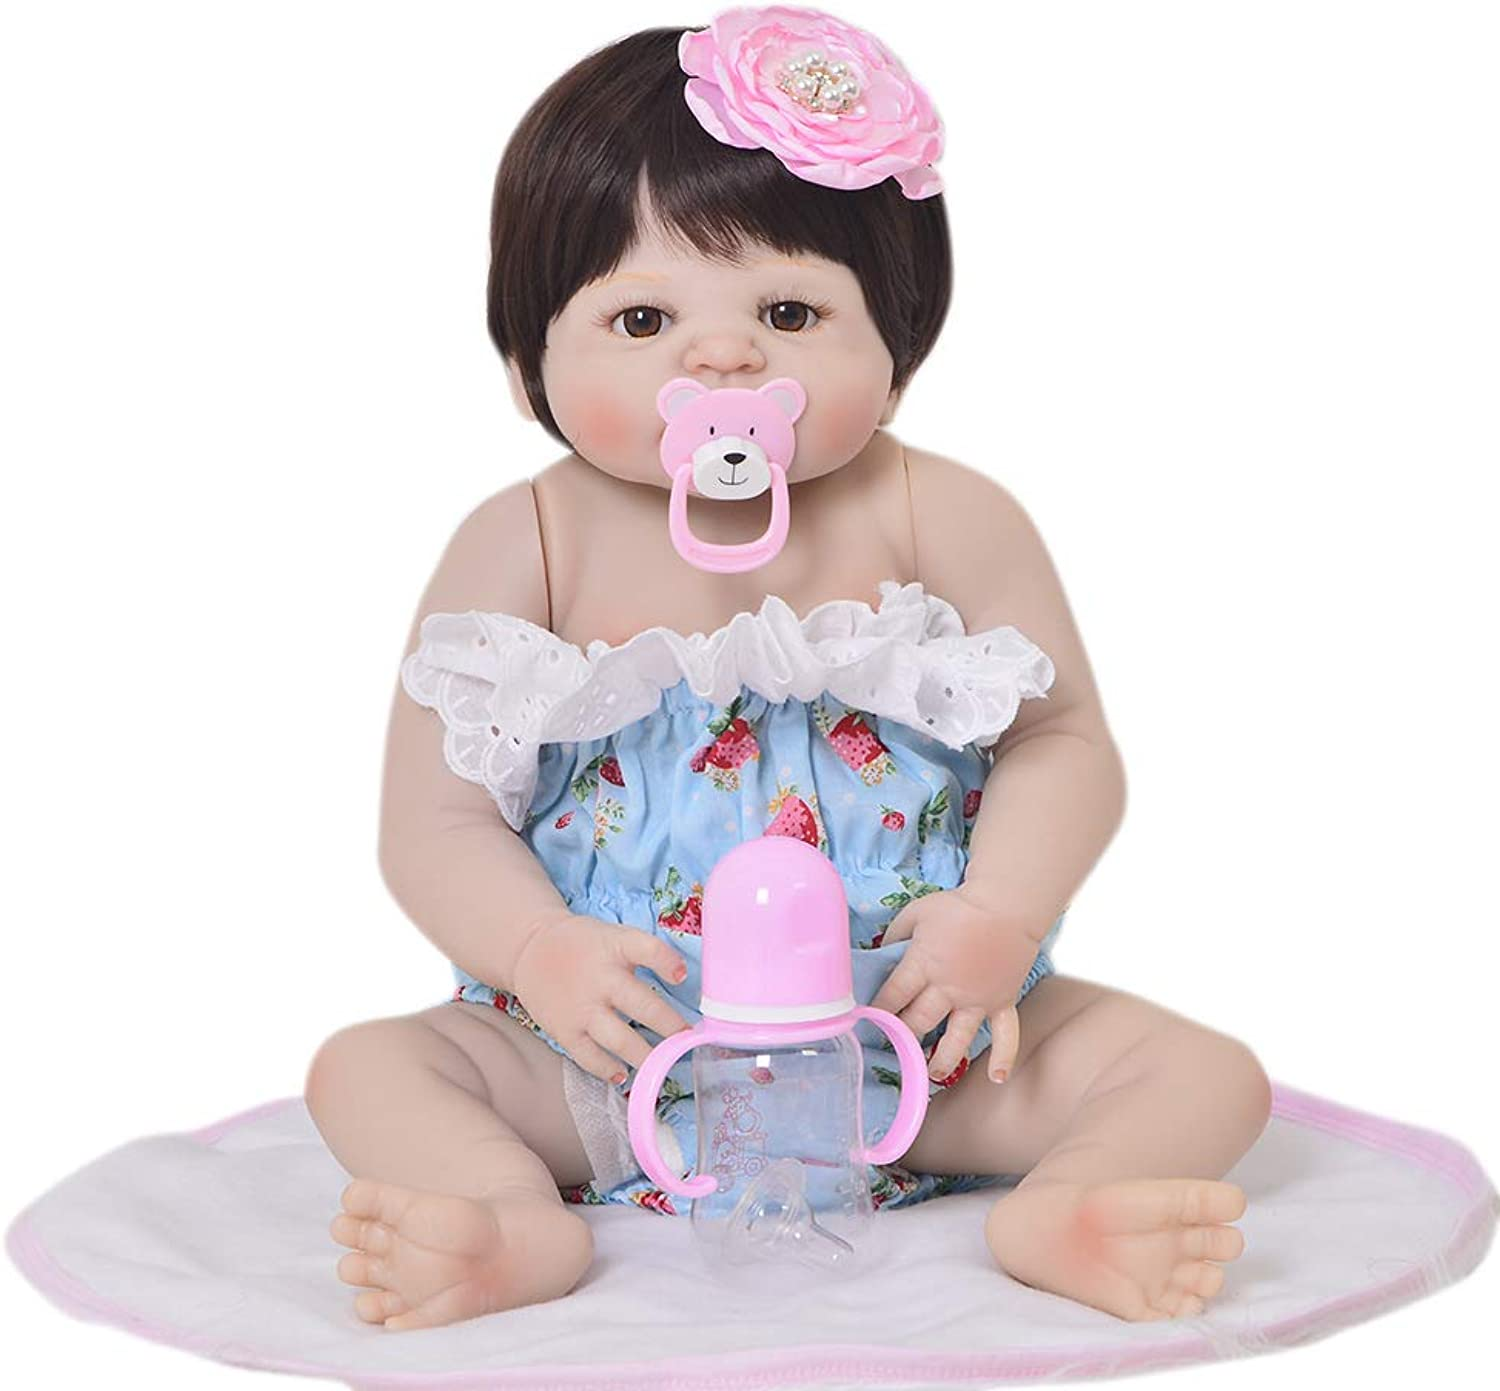 JUNMAO 22 Inch Lifelike Reborn Baby Dolls Girls Handmade Soft Silicone Realistic Newborn Baby Doll with Strawberry Clothes & Accessories, Gifts and Playmates for Kids Age 3+ (bluee, 55CM)